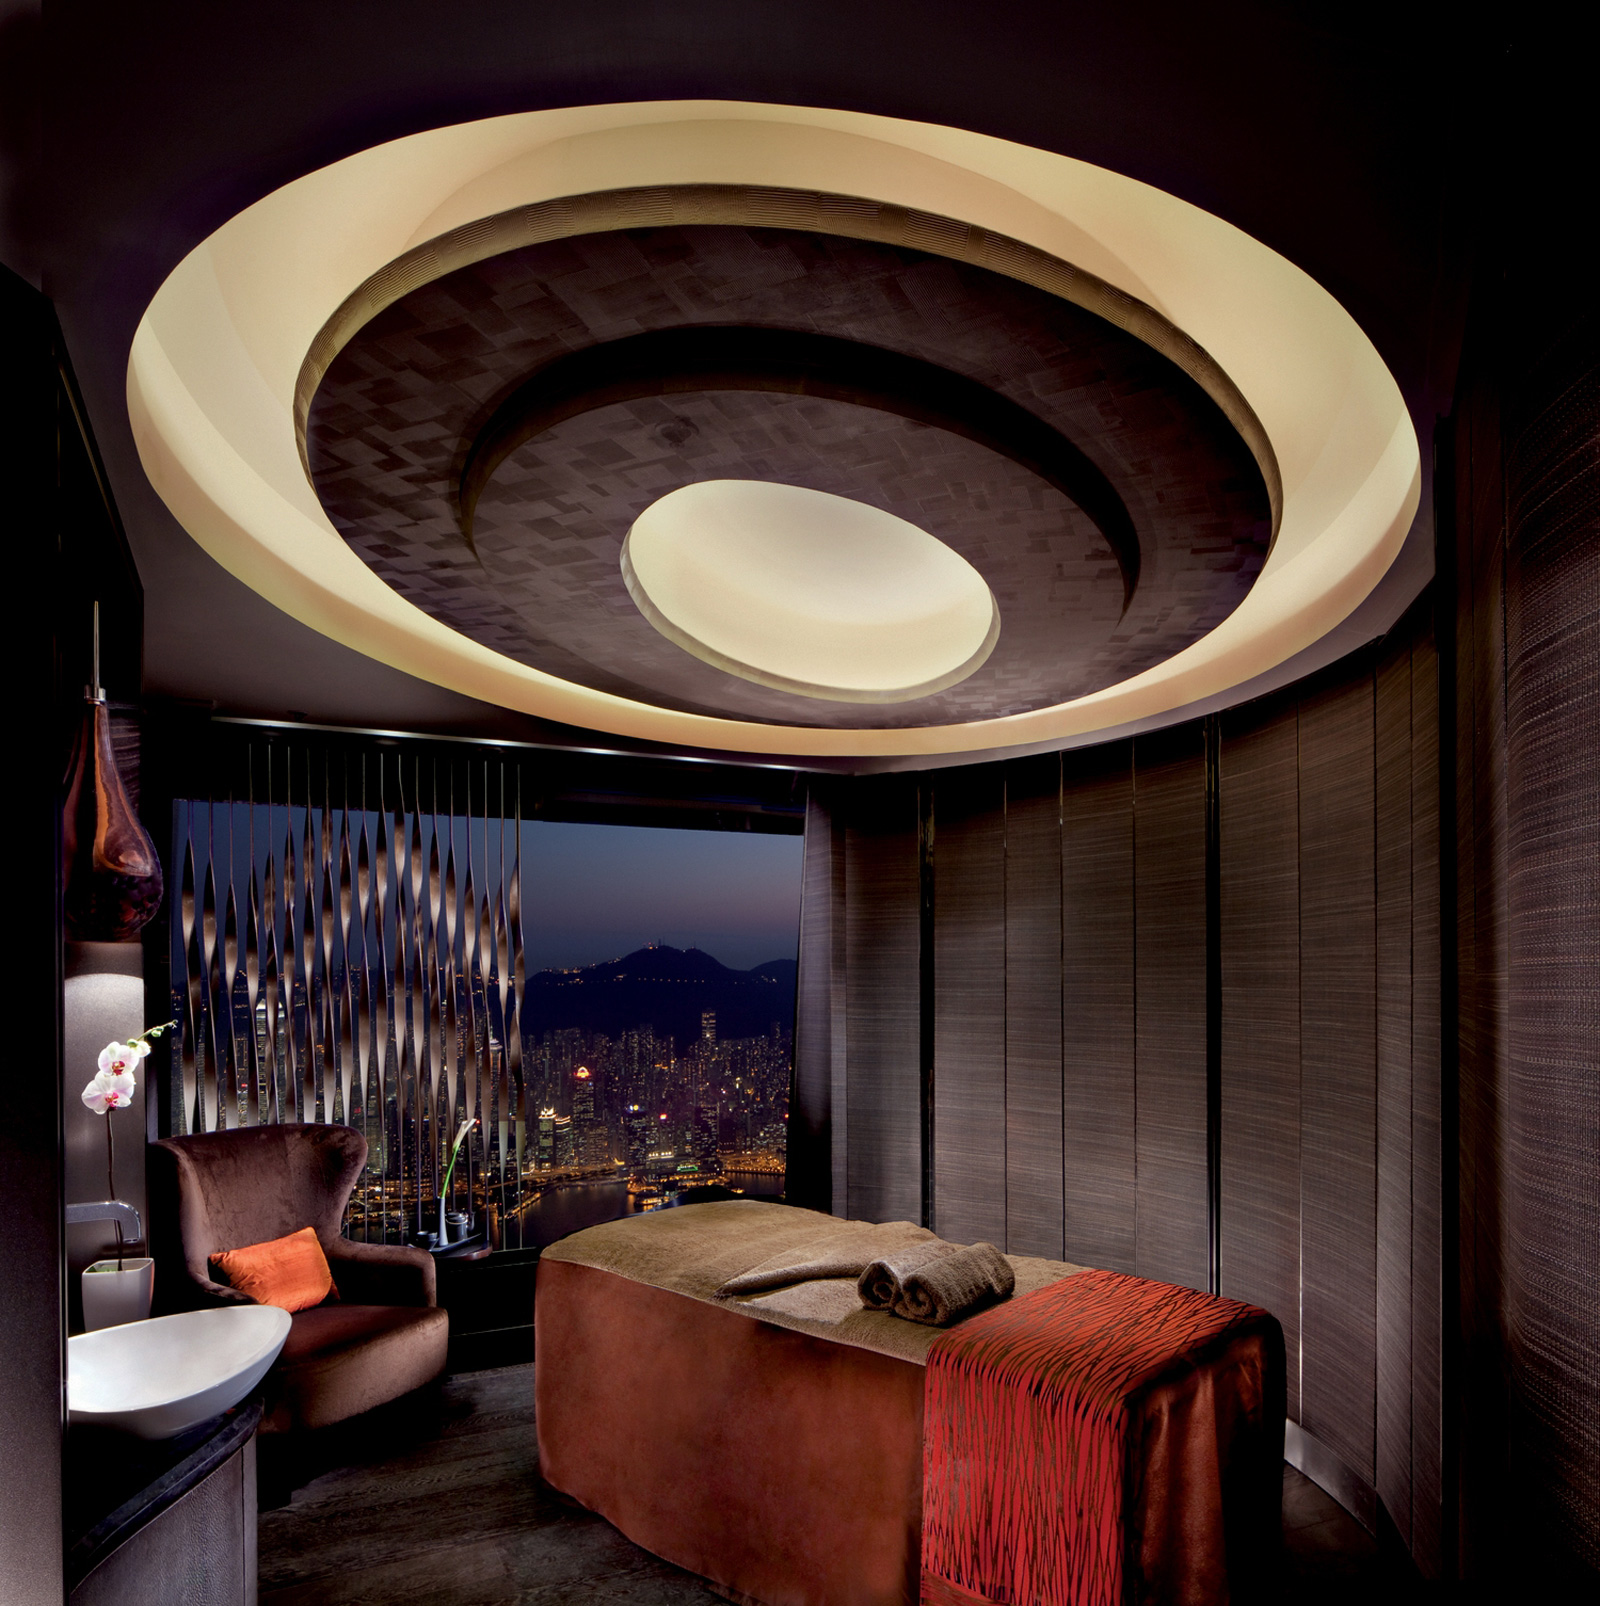 ESPA treatment room at The Ritz-Carlton, Hong Kong